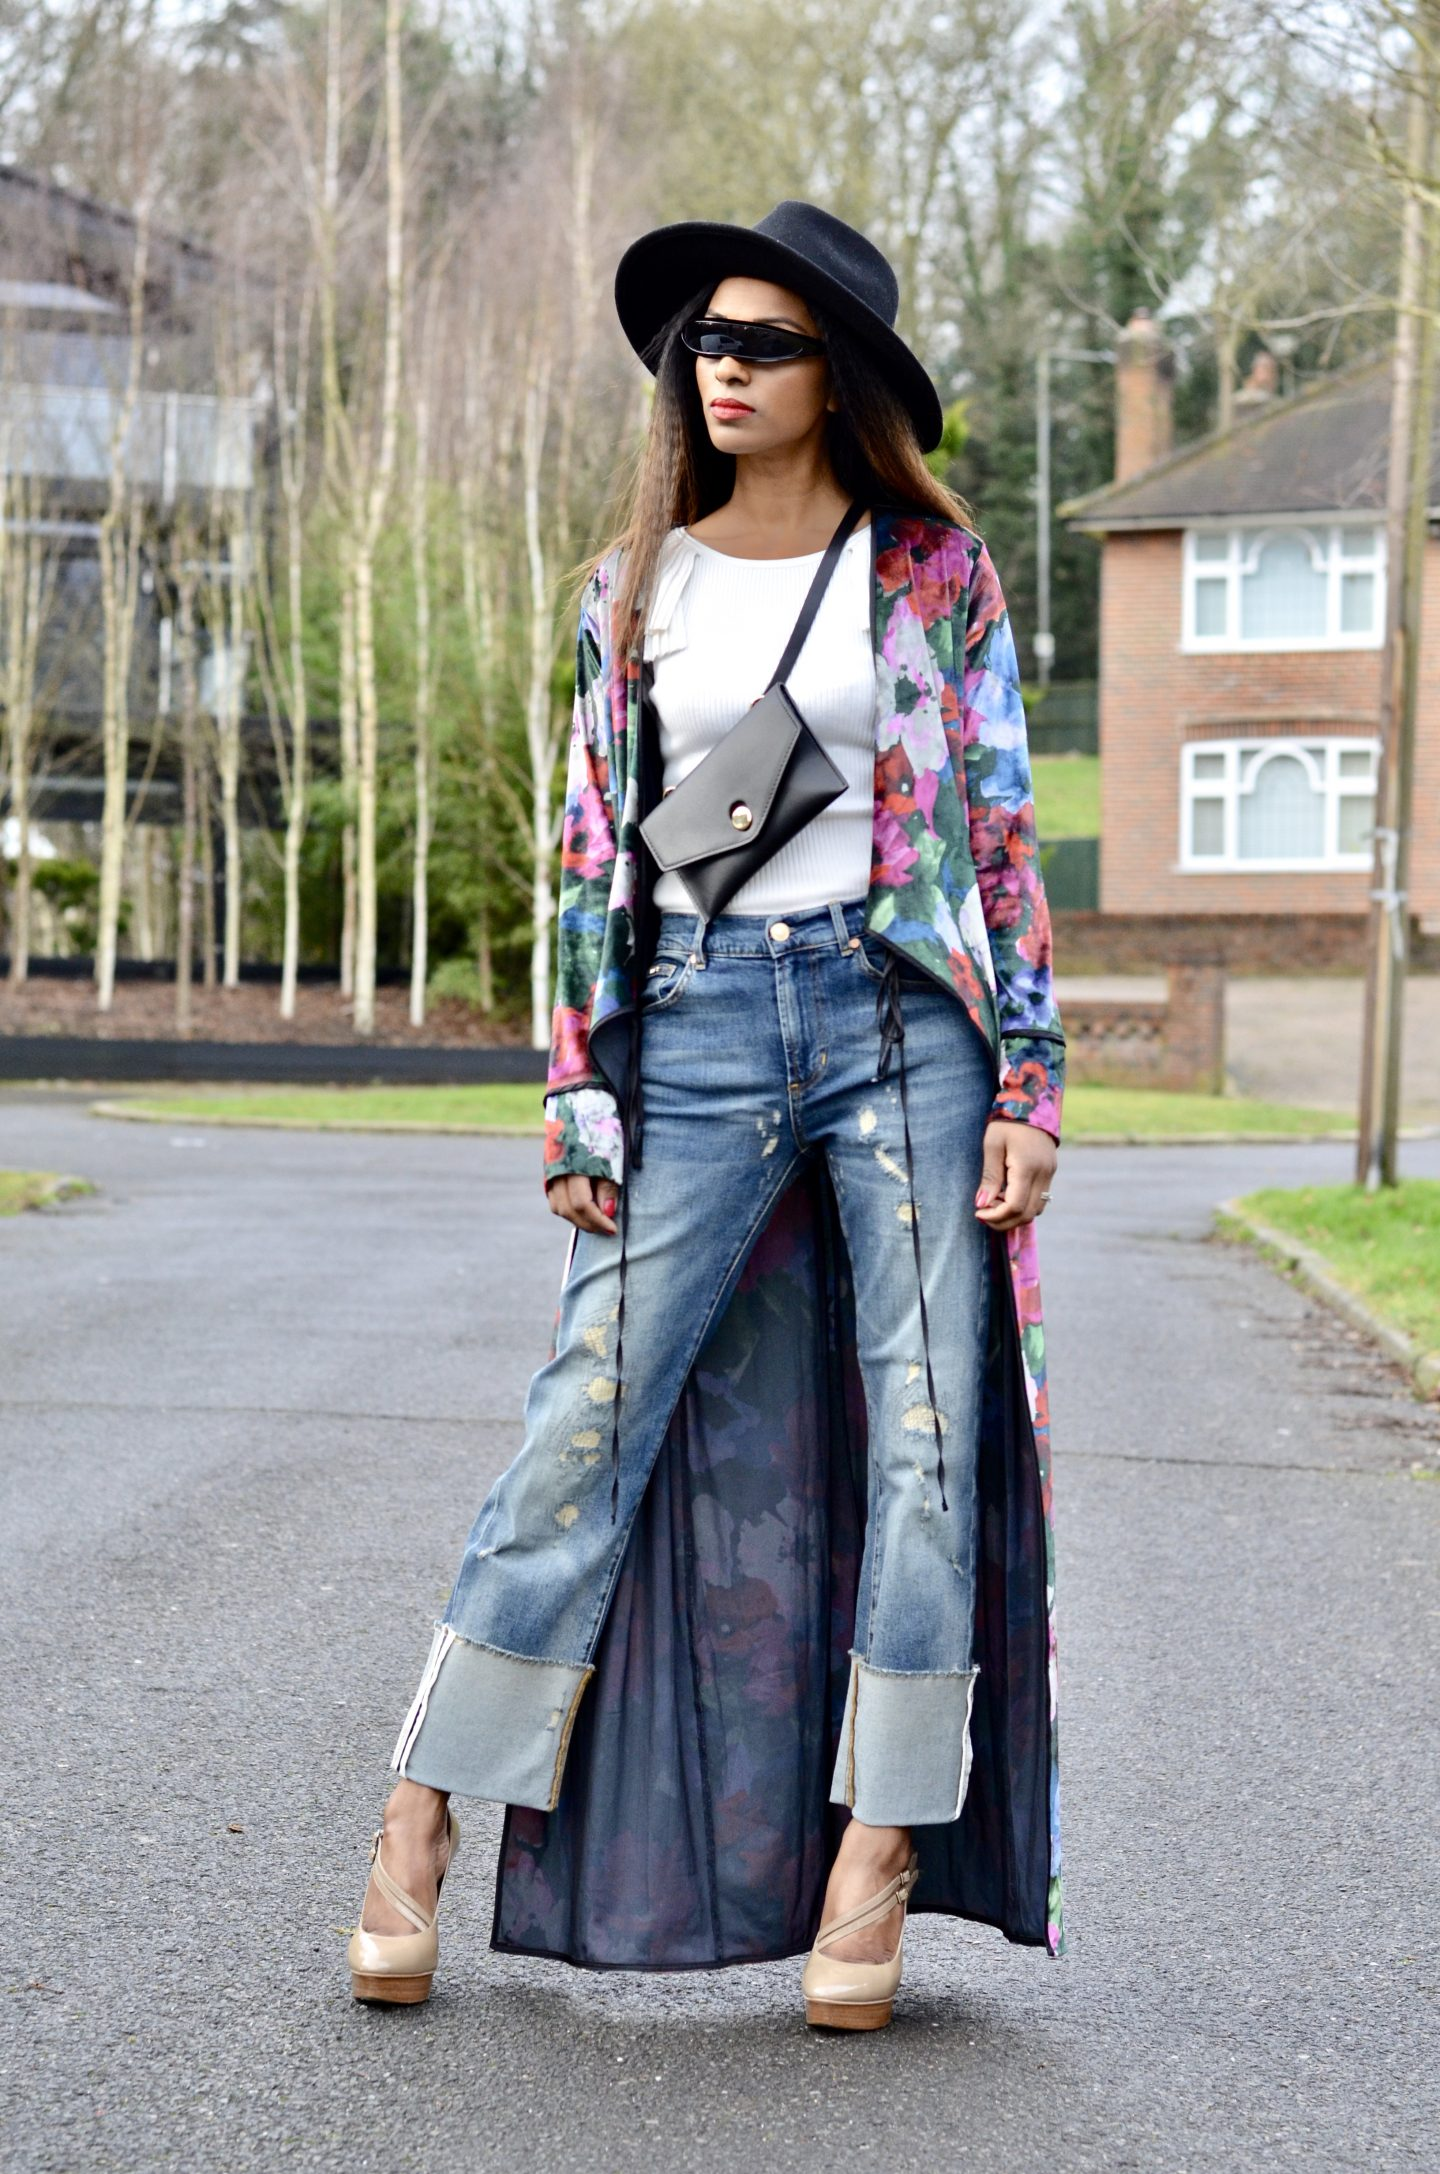 How to style denim and kimono